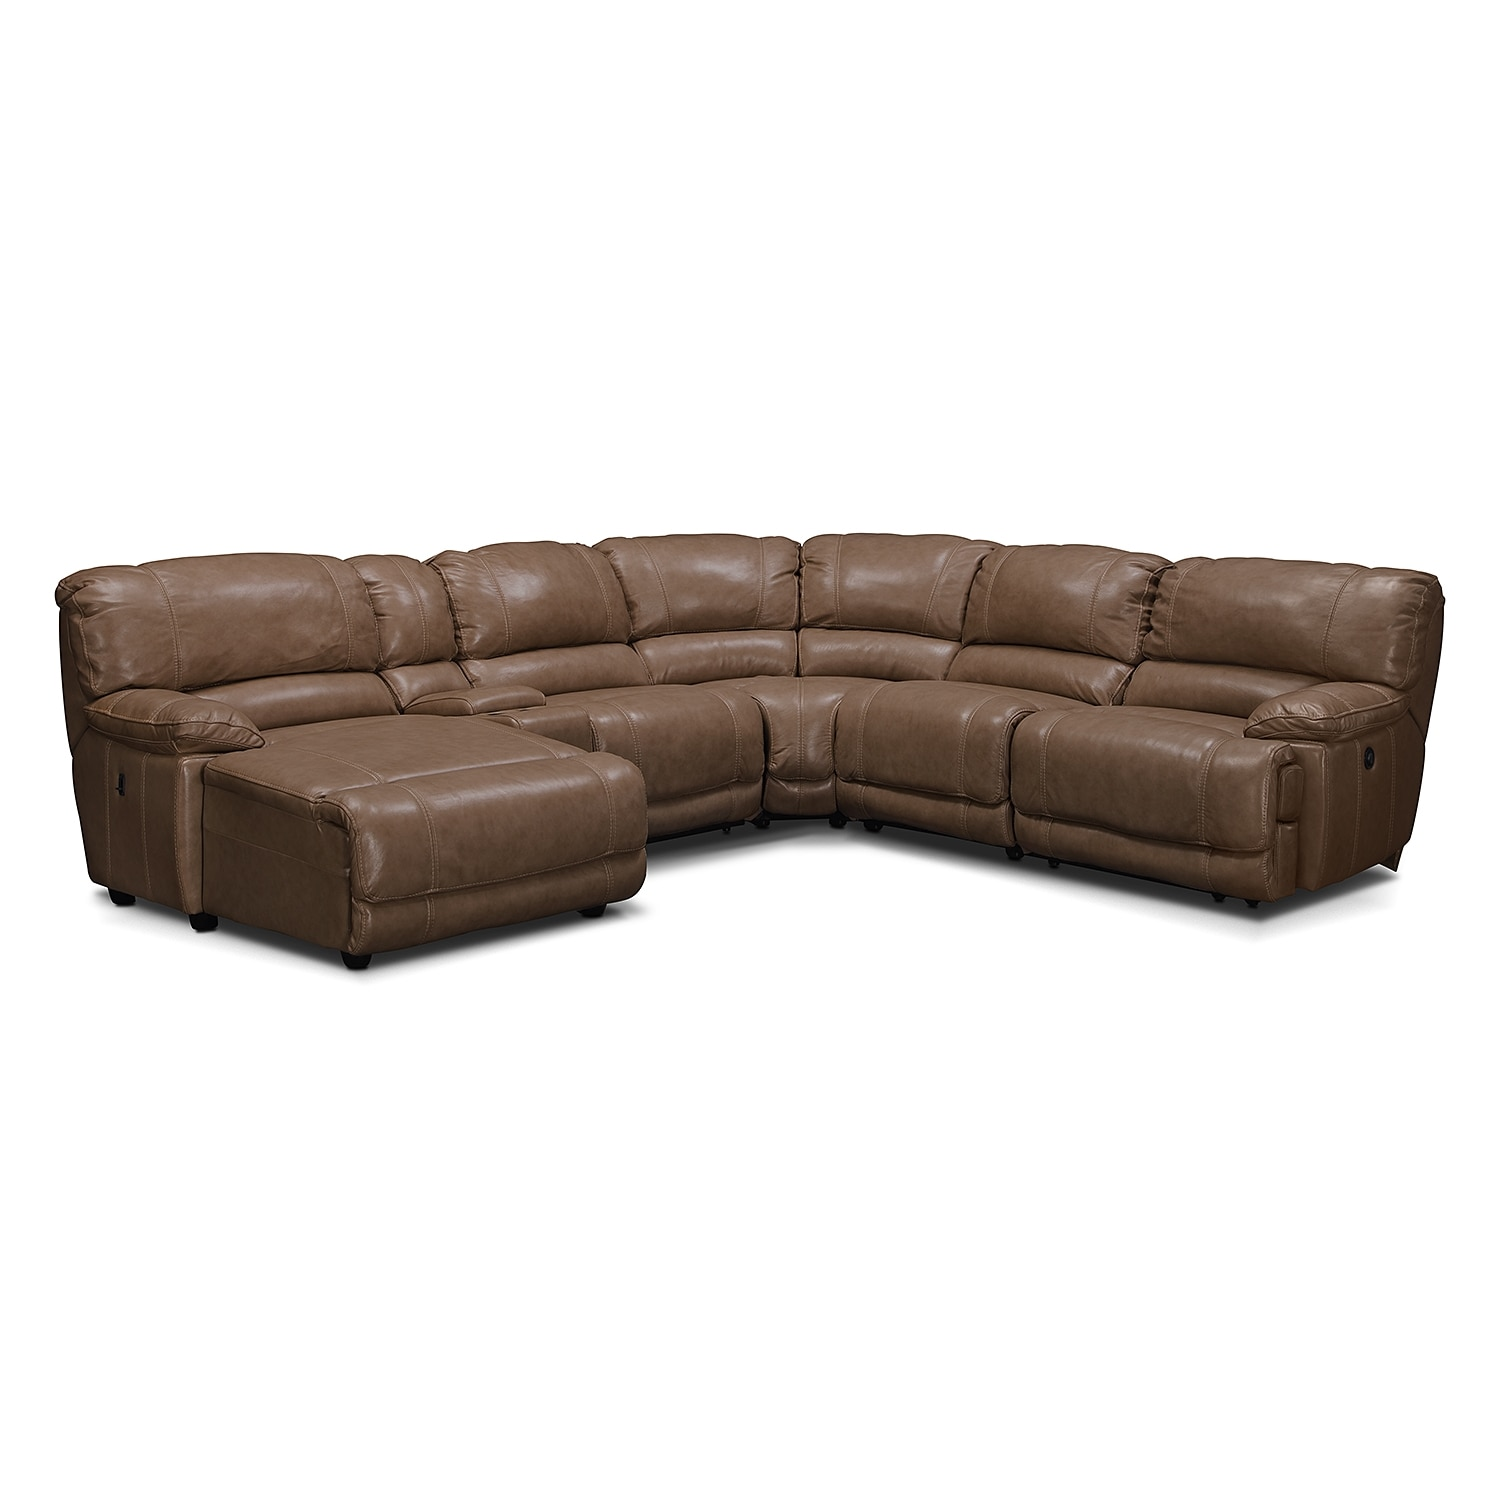 Living Room Furniture - St. Malo 6-Piece Power Reclining Sectional with Left-Facing Chaise - Taupe